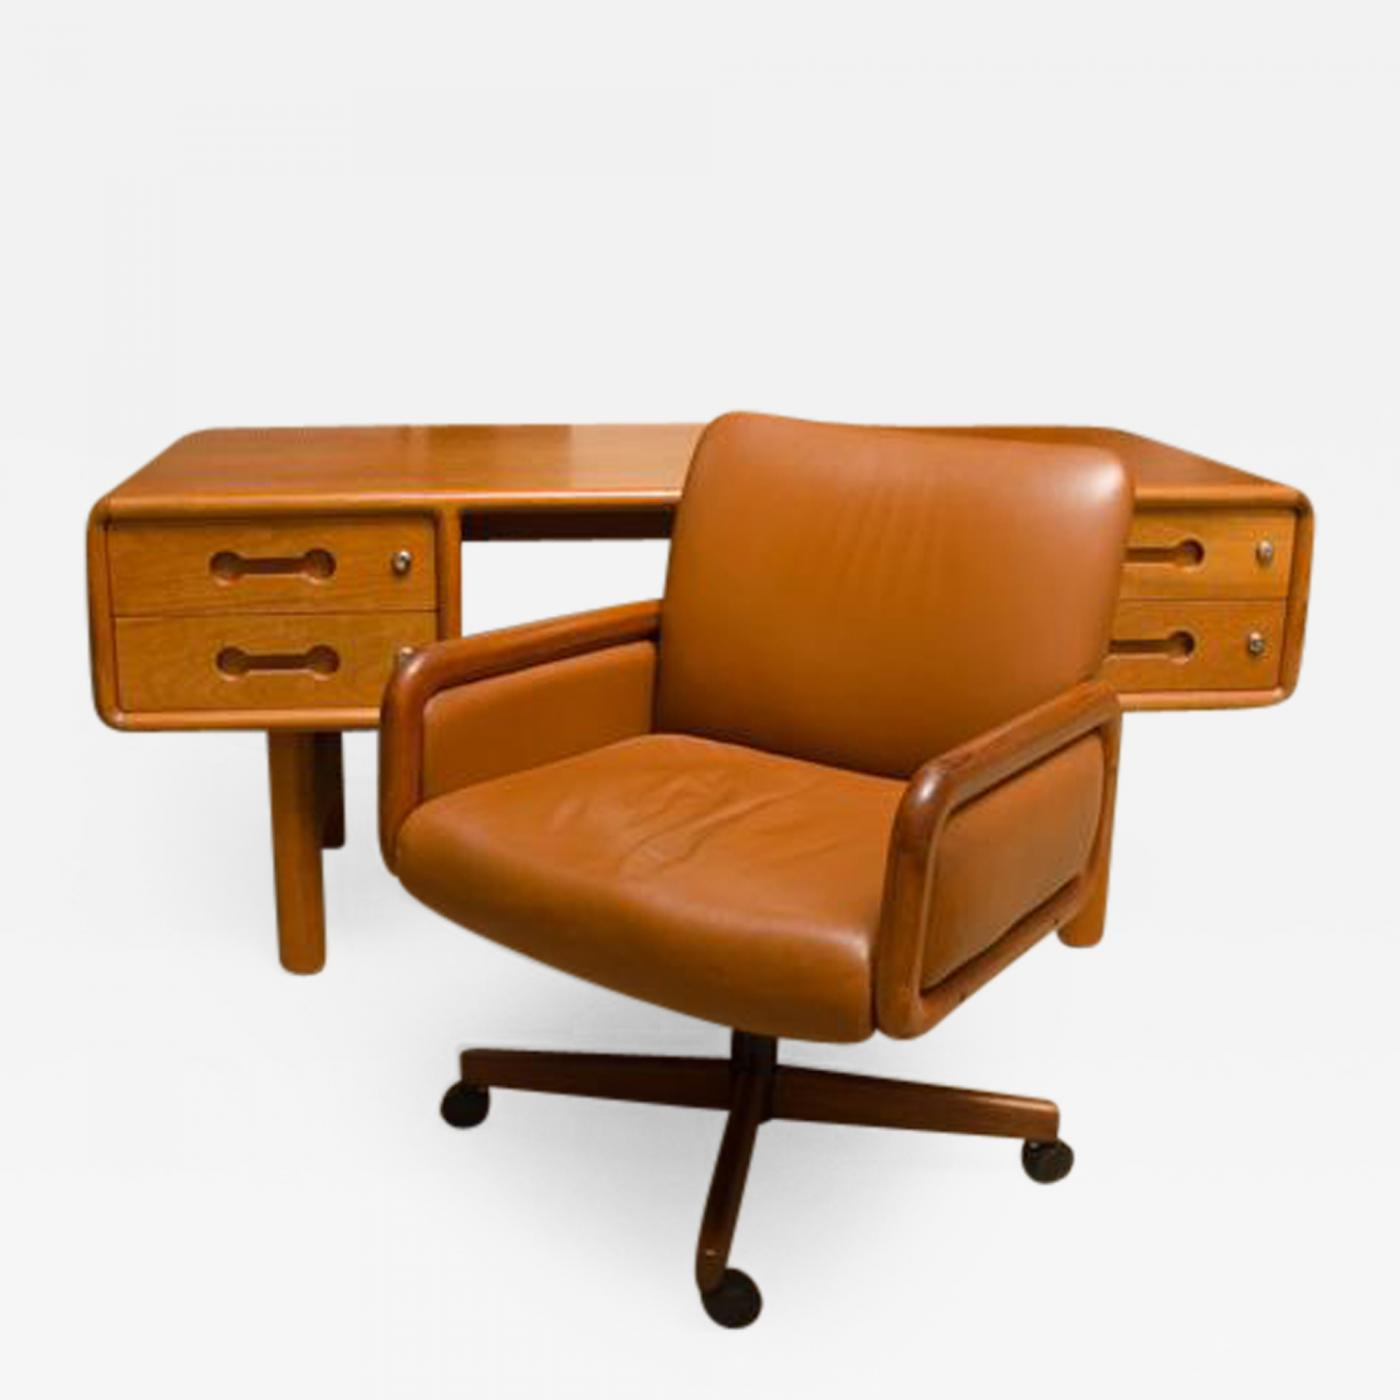 Fabulous Danish Teak Desk With Matching Desk Chair